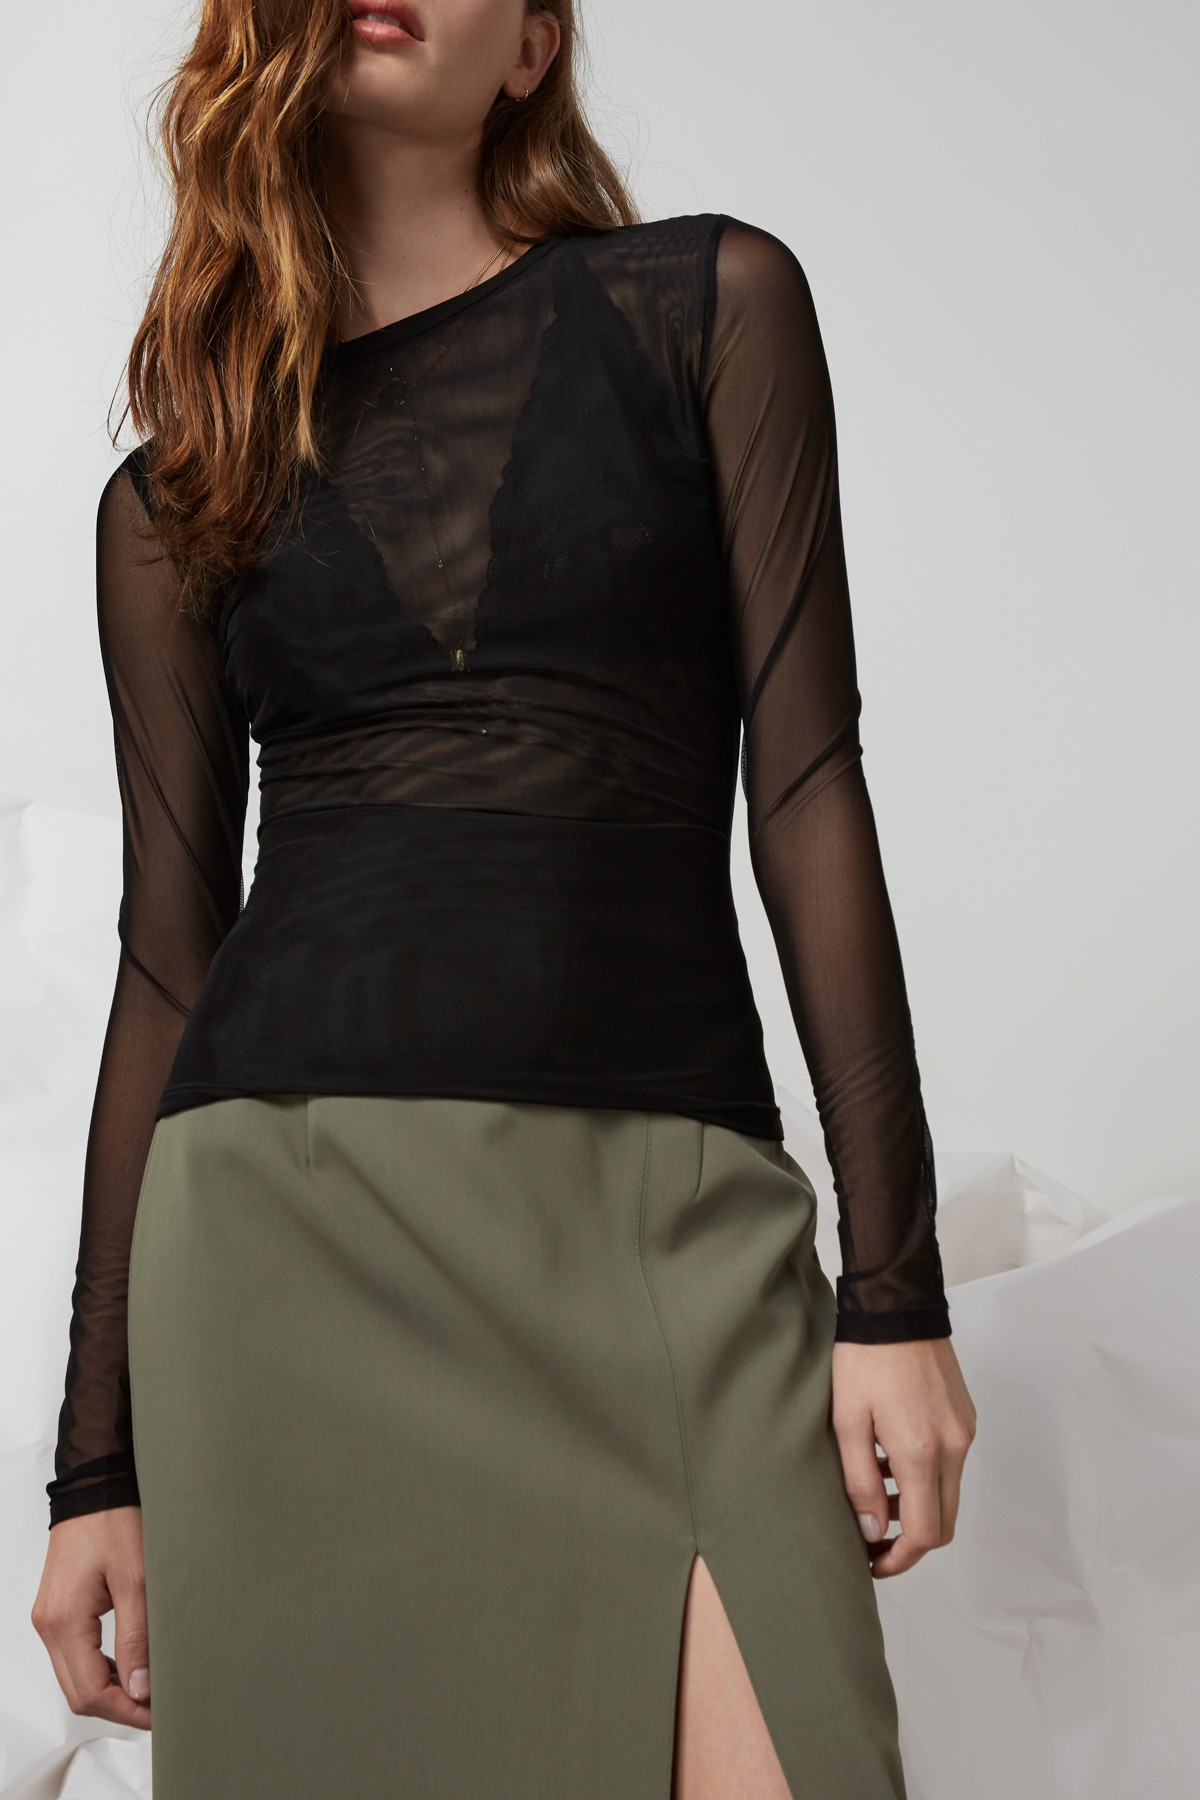 Shop Finders Two Minds Long Sleeve Top.